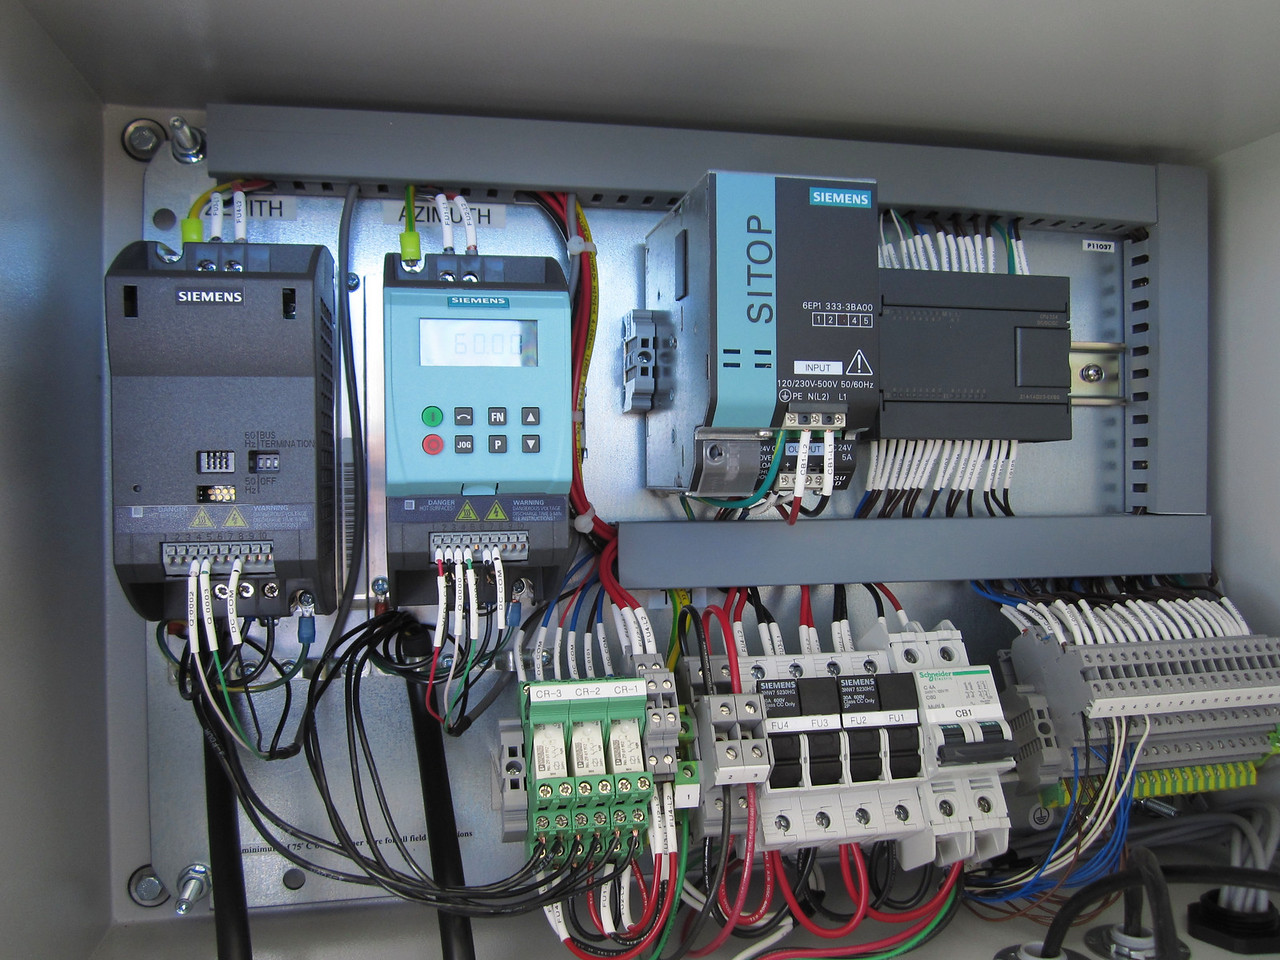 The tracker drive computers (one for Zenith and one for Azimuth) along with fuses and switches,